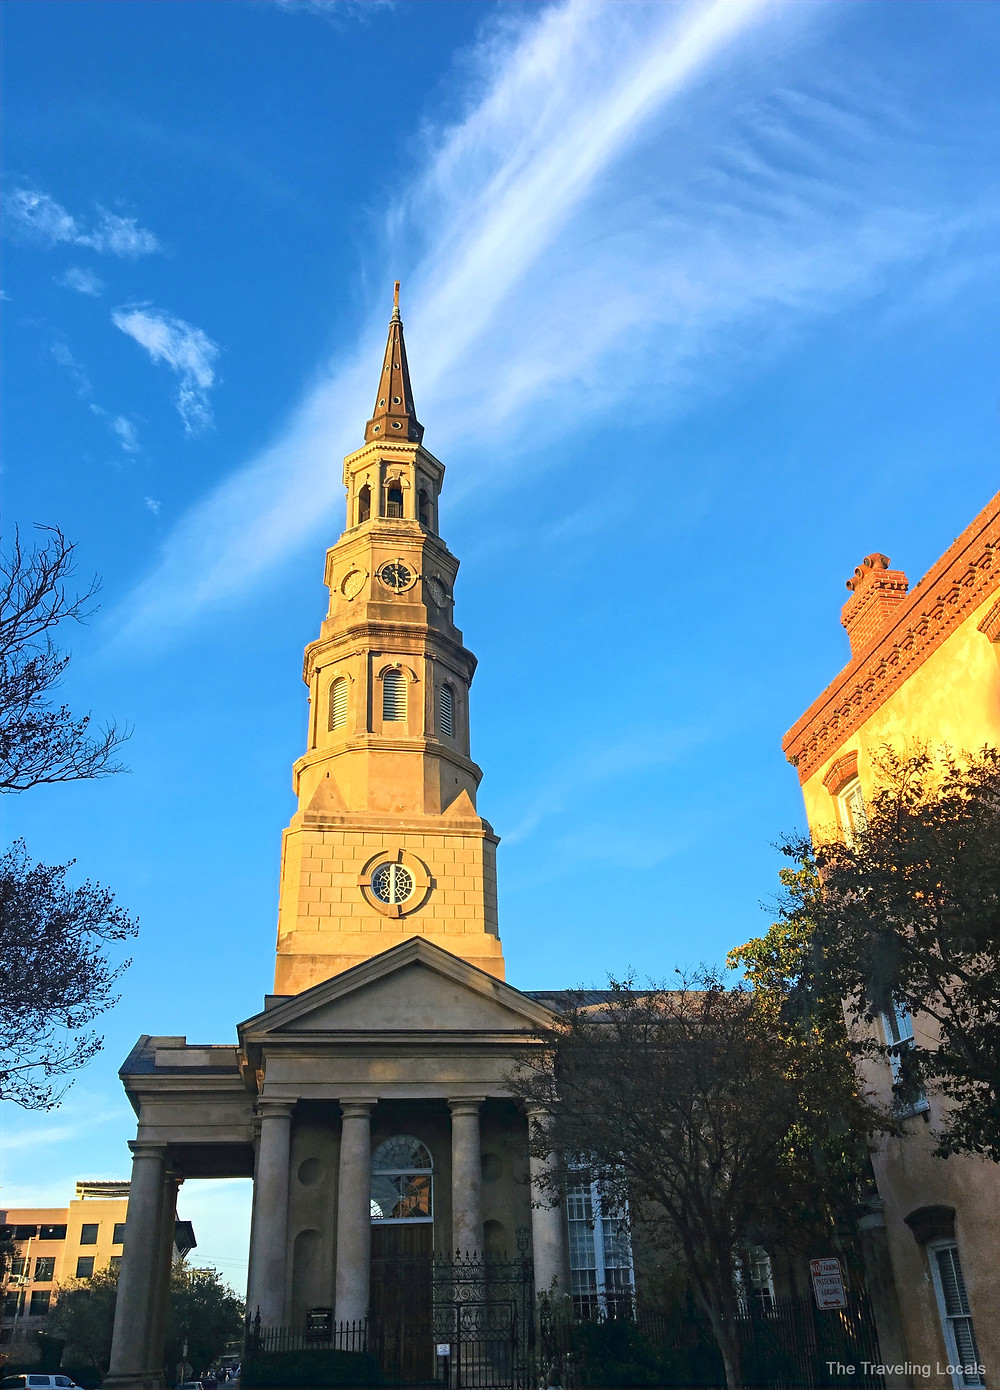 St Philips Church, Church Street, Charleston SC